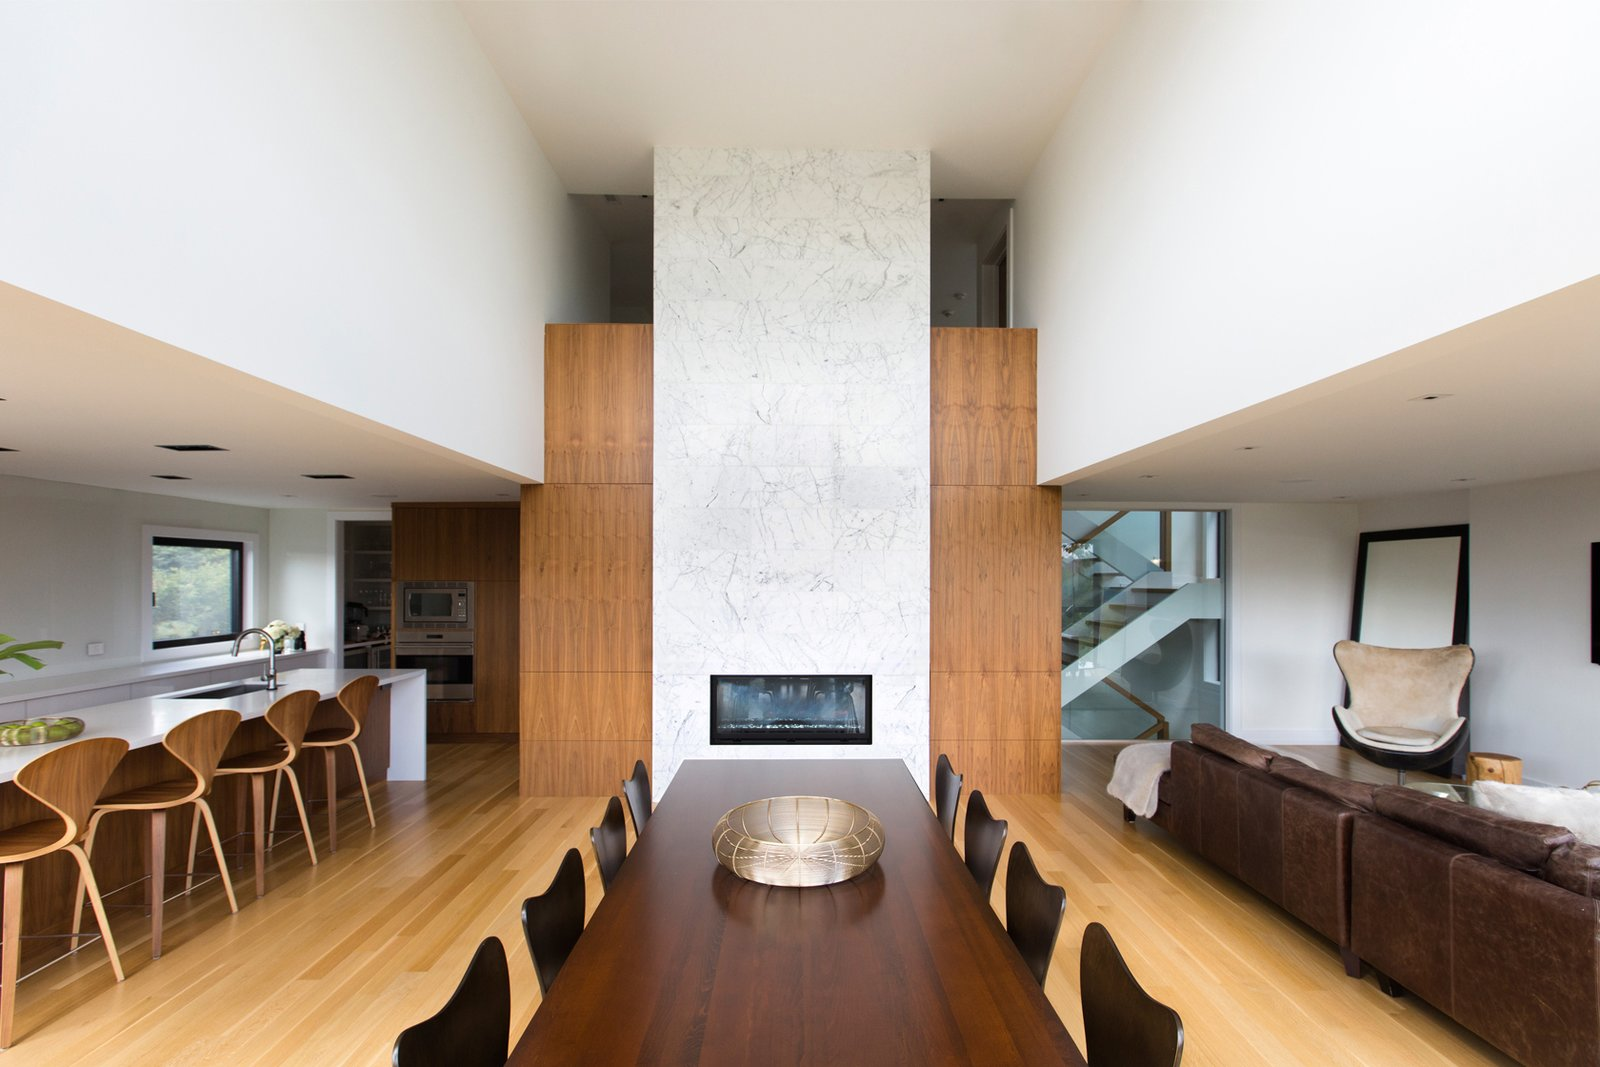 A central, double height, dual-sided fireplace anchors the home, connecting the main living spaces with the entrance and spacious gallery foyer on the opposite side.  Ravine House by FrankFranco Architects